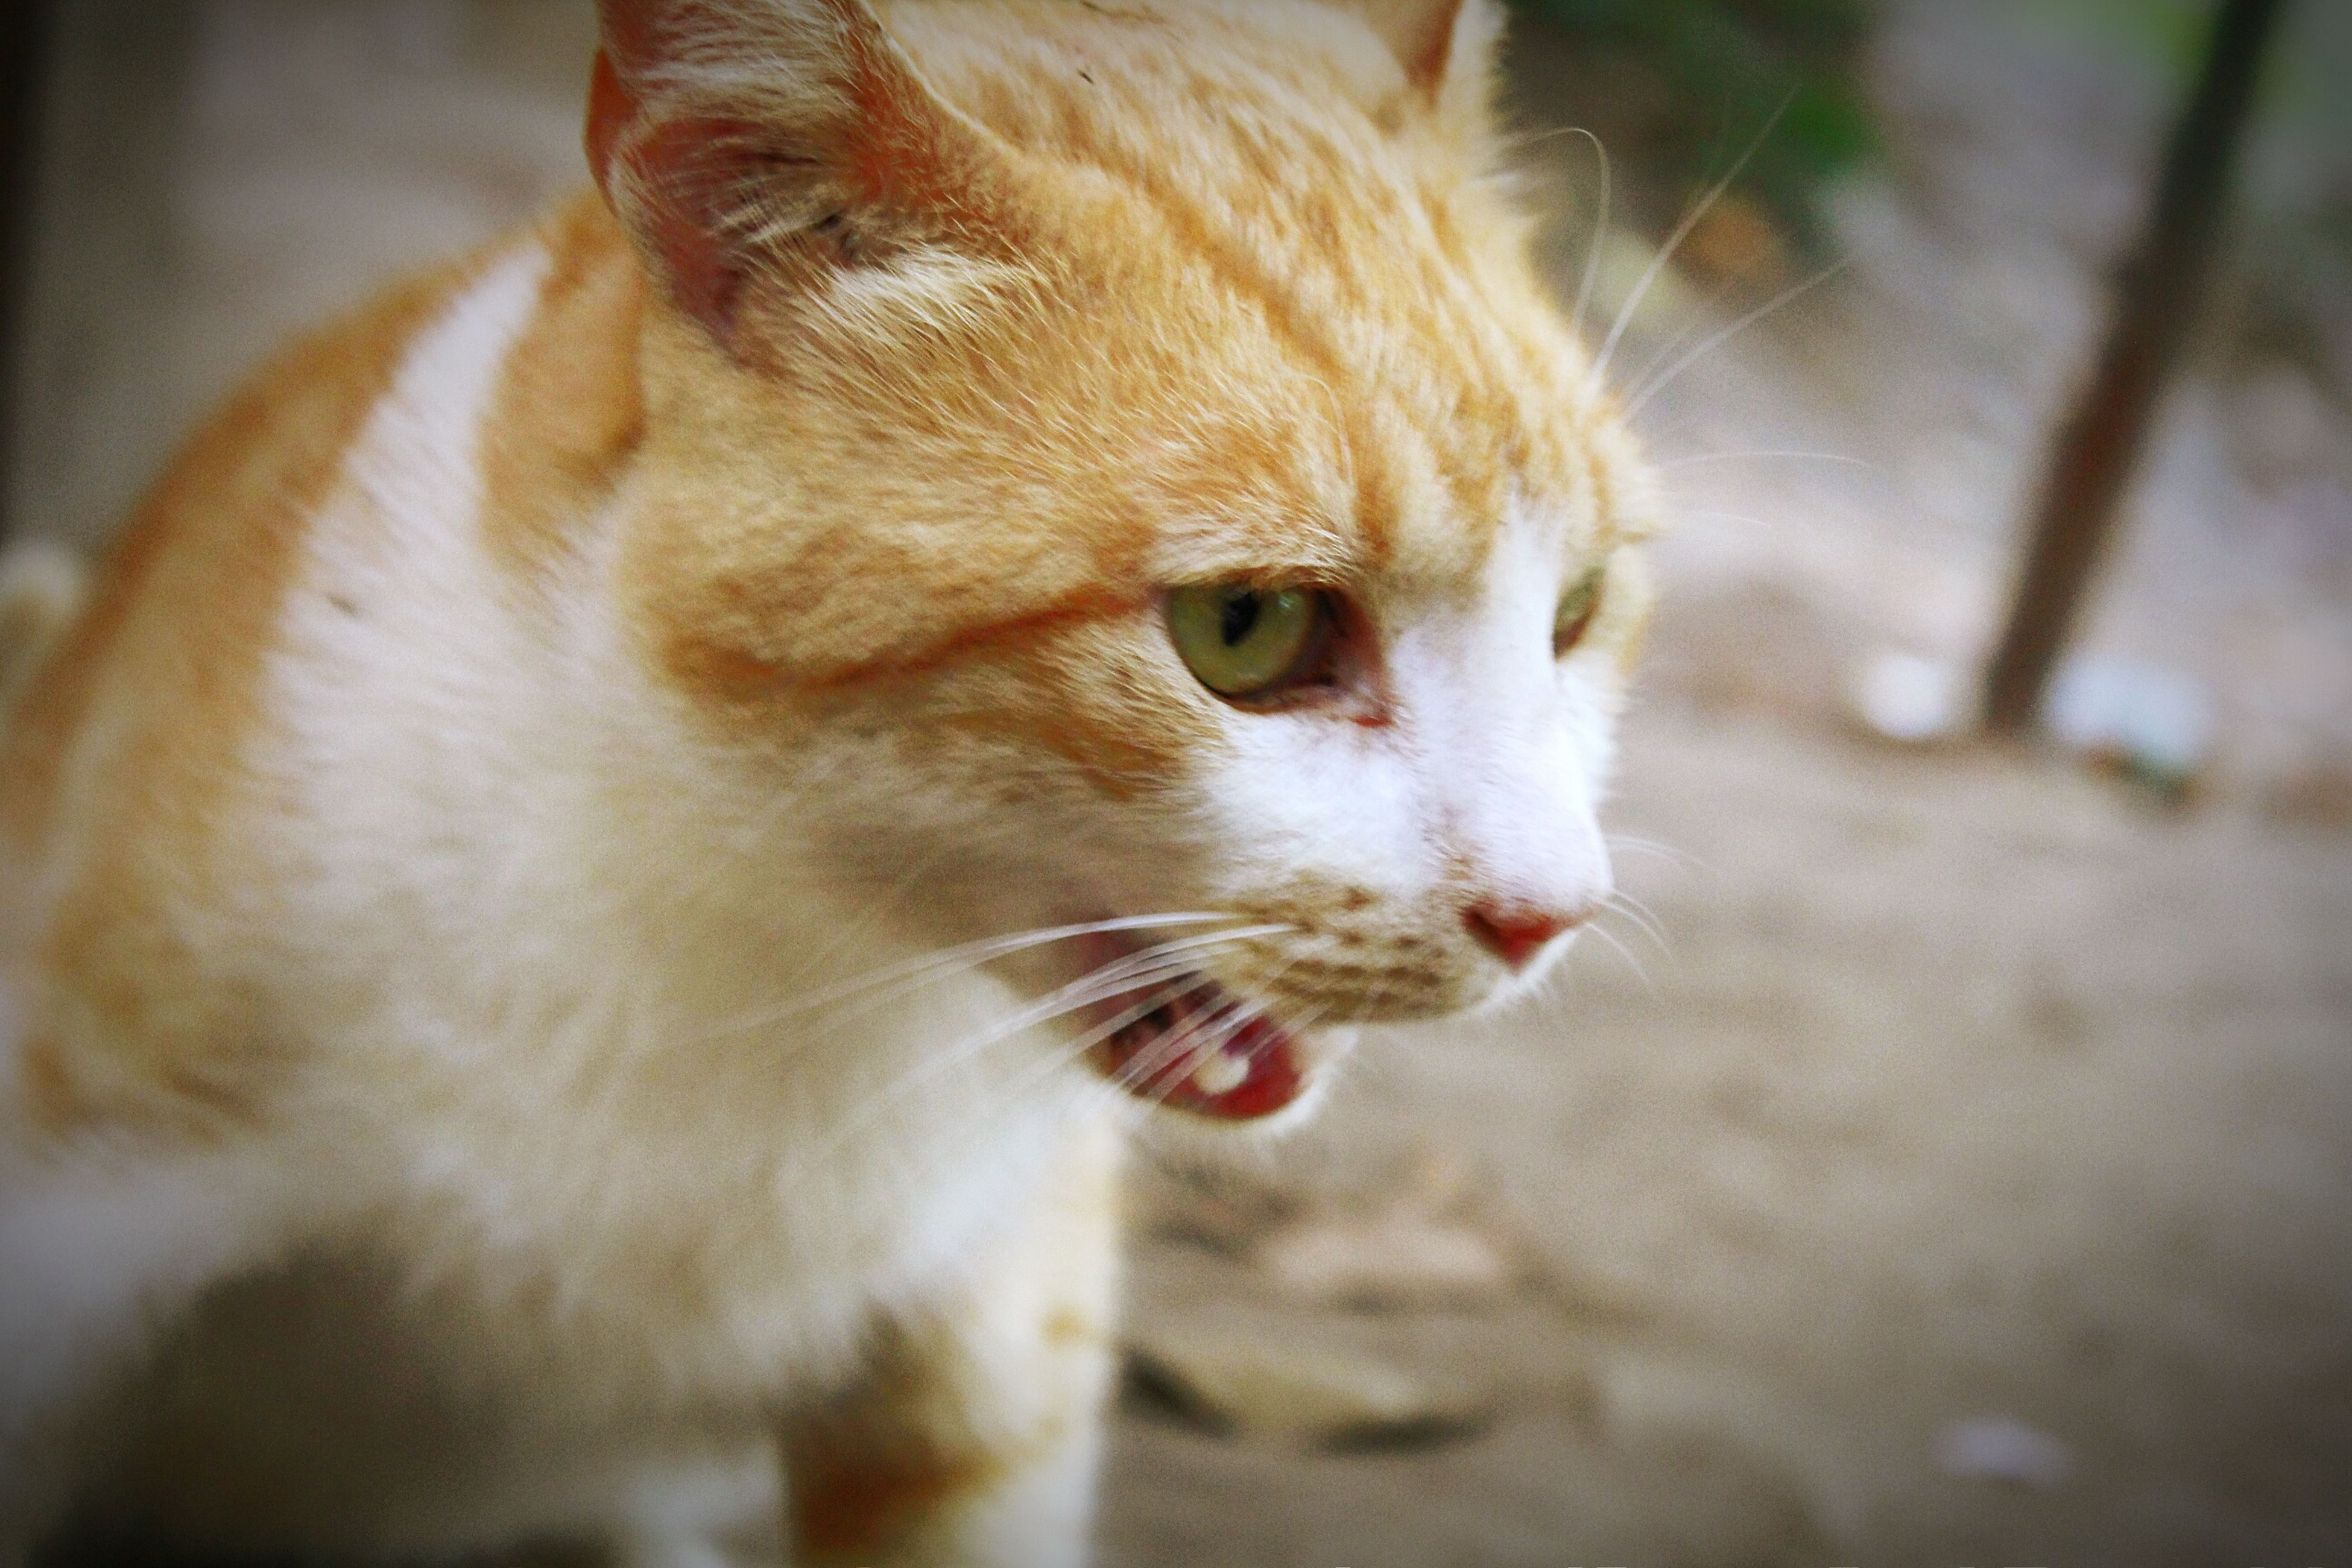 one animal, animal themes, pets, domestic animals, domestic cat, mammal, cat, feline, whisker, close-up, portrait, looking at camera, animal head, selective focus, focus on foreground, indoors, alertness, no people, animal eye